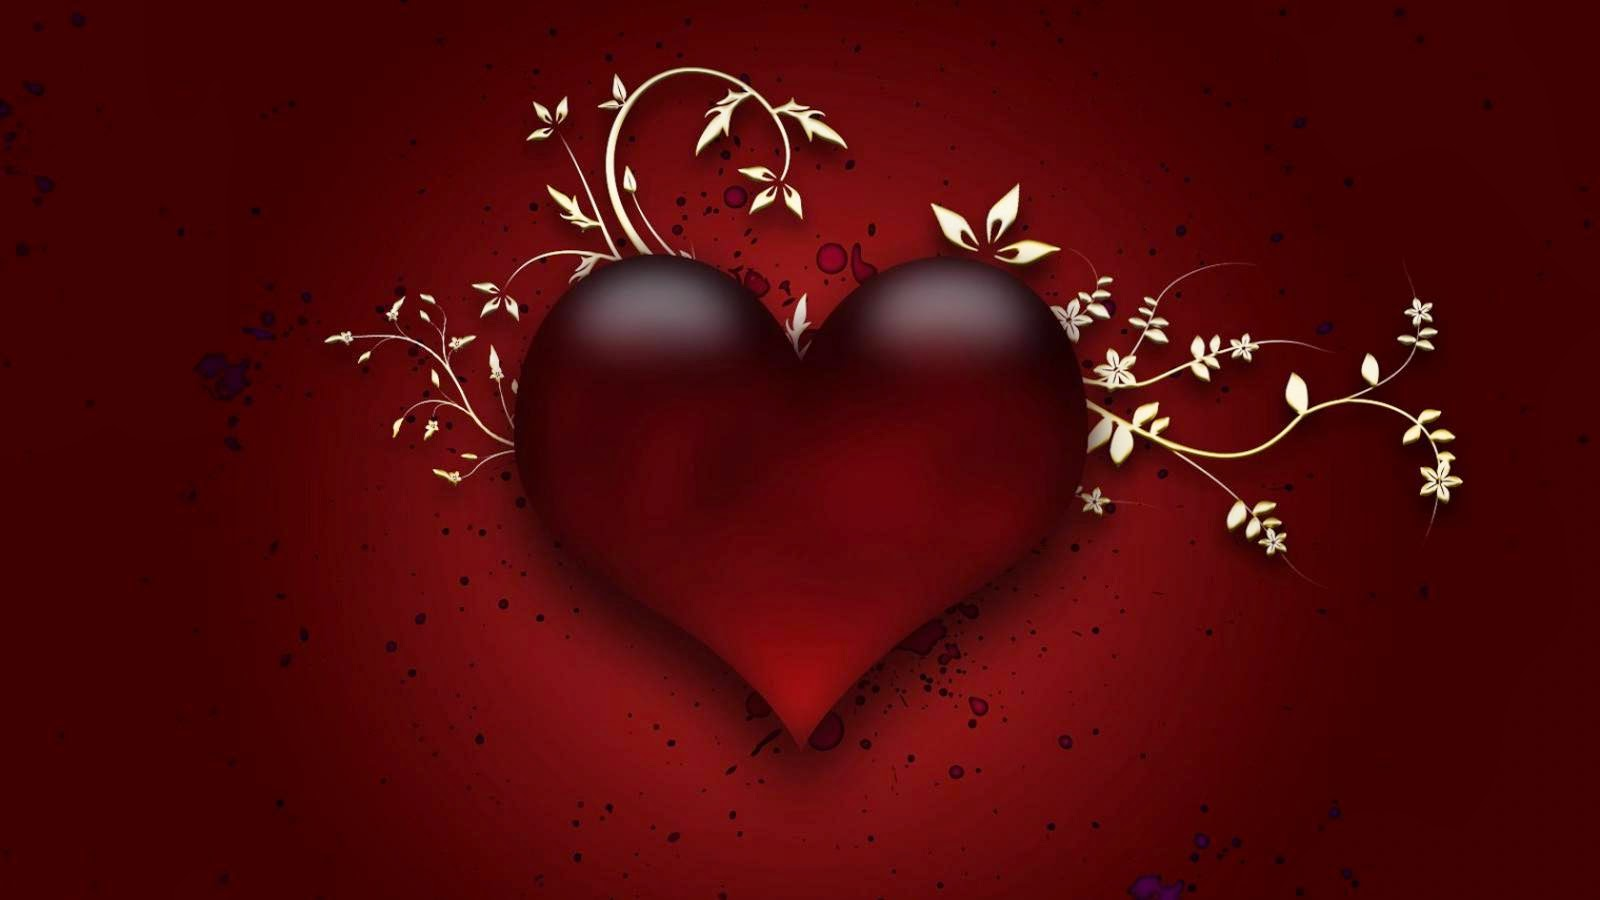 Red Heart Love Wallpaper: Download Free High Definition